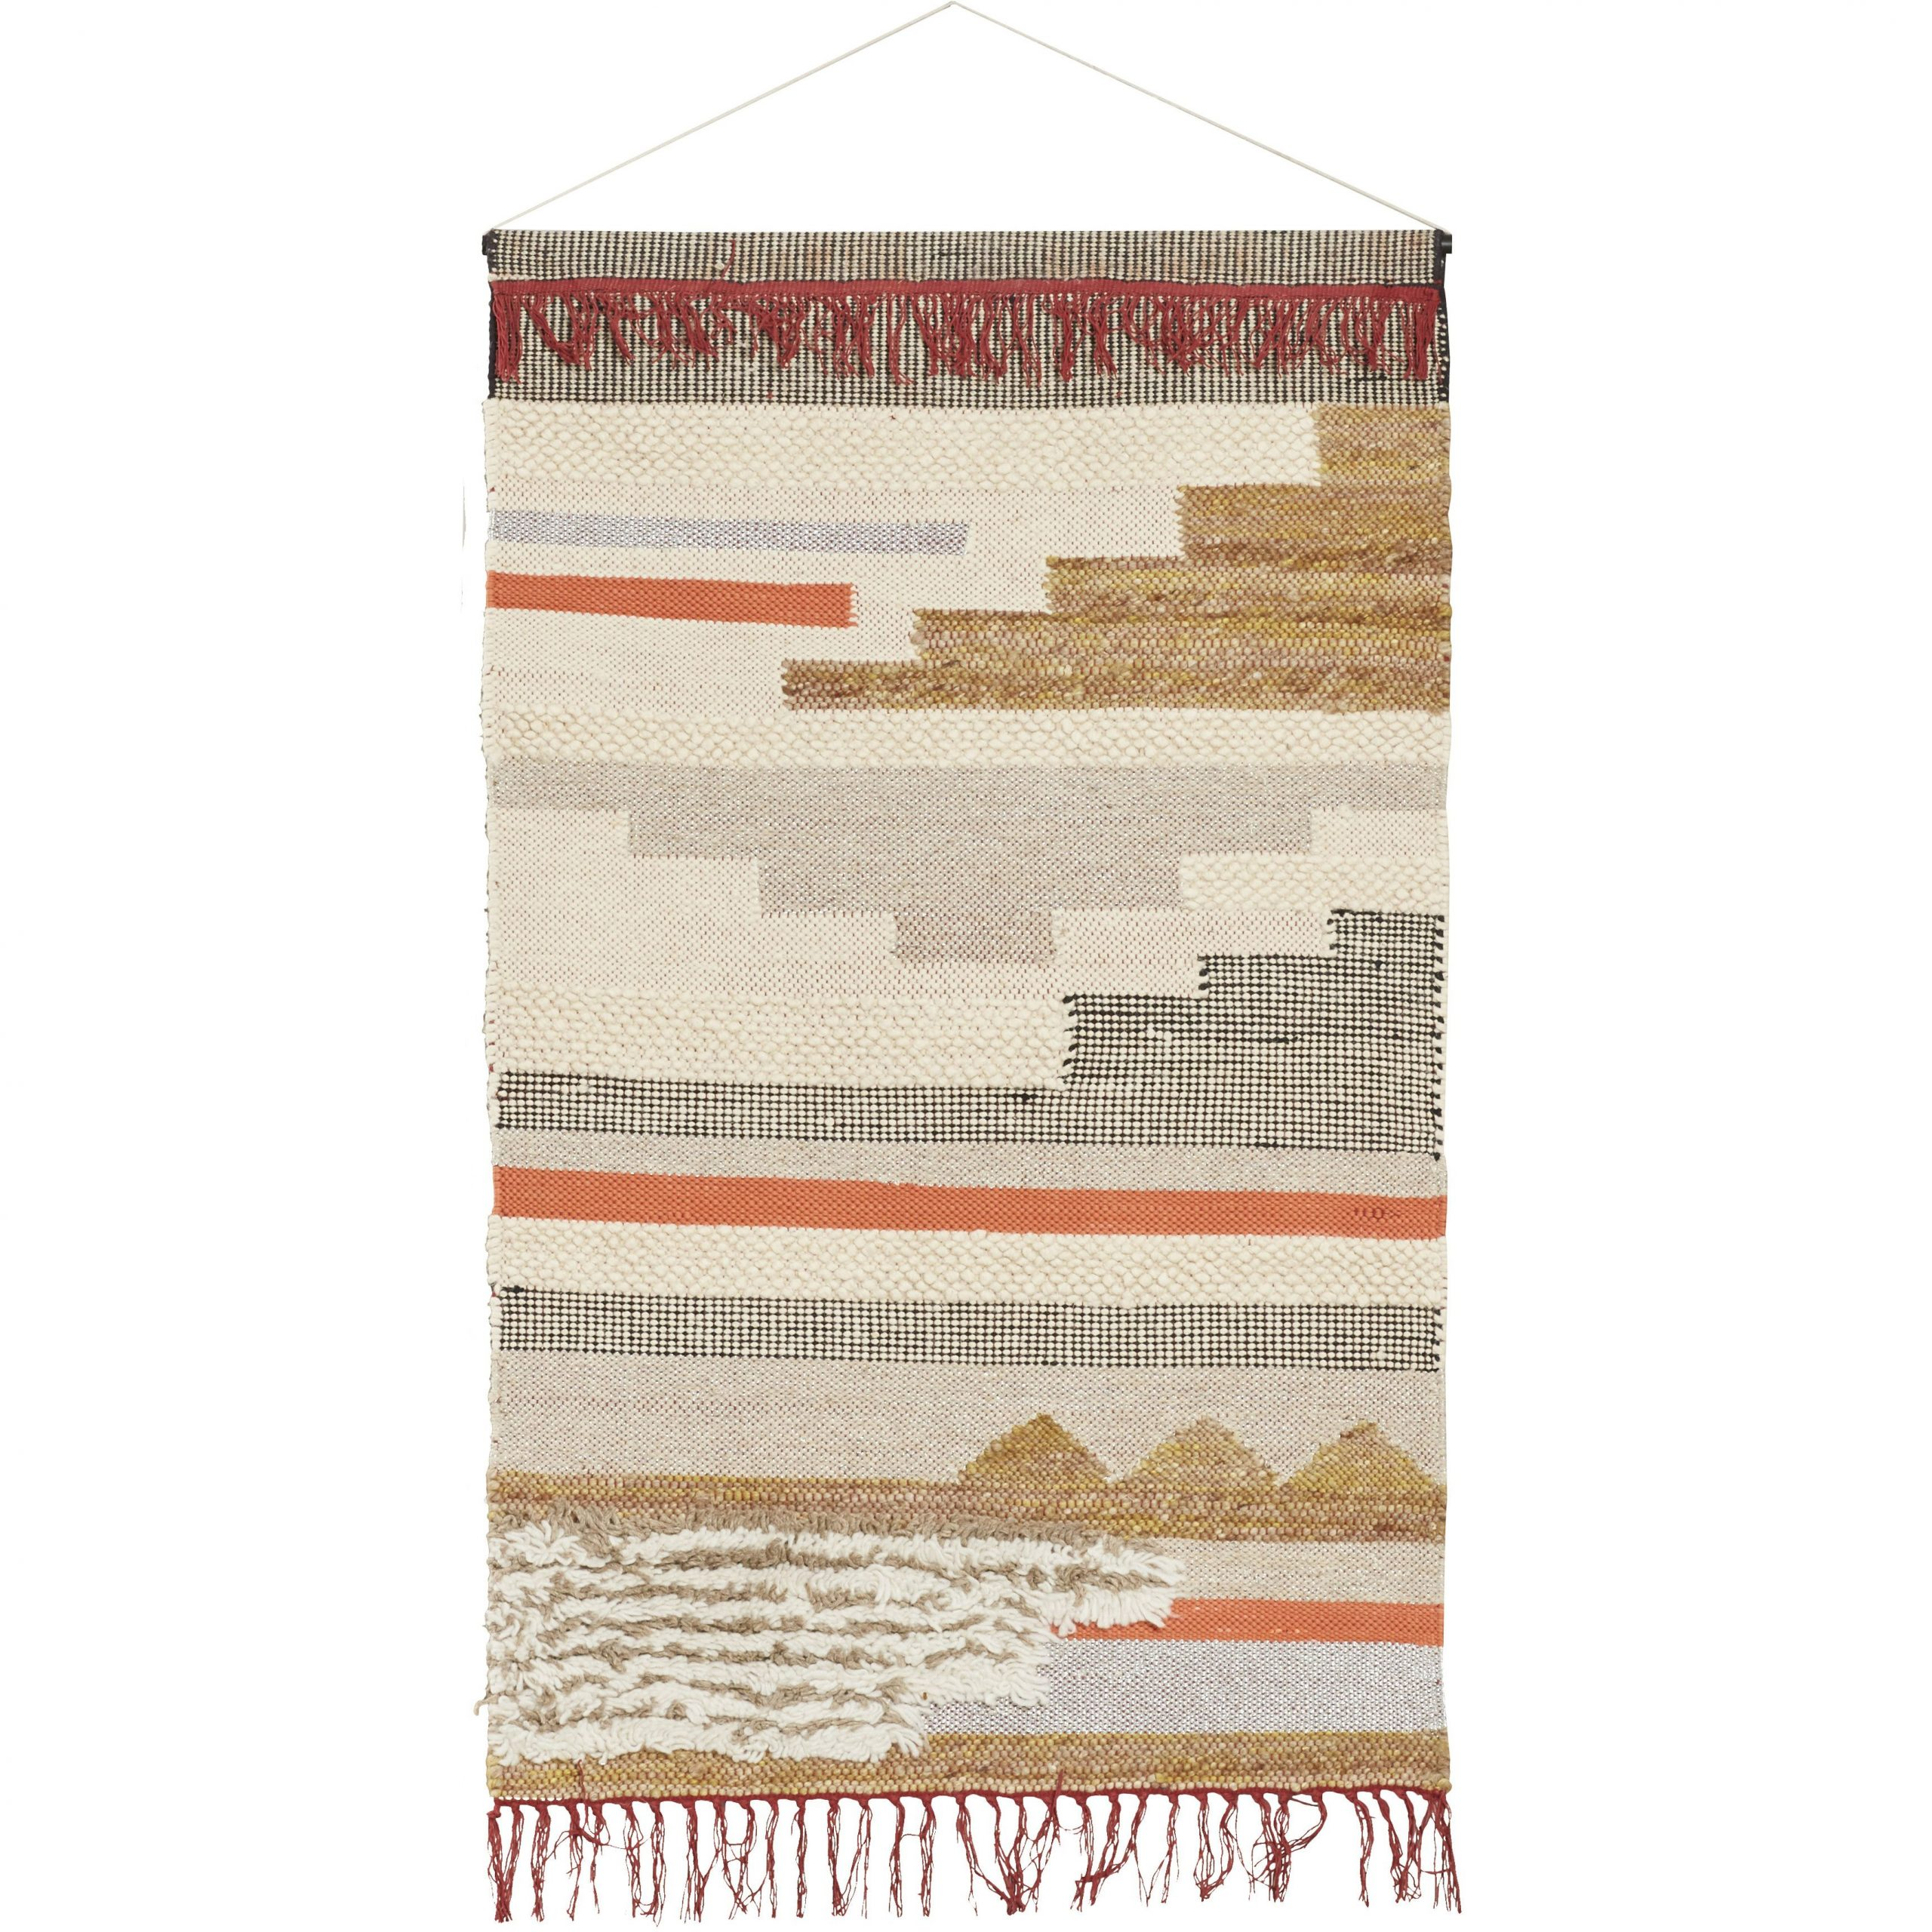 Most Popular Blended Fabric Wall Hanging With Hanging Accessories Intended For Blended Fabric Wall Hangings With Hanging Accessories Included (View 4 of 20)